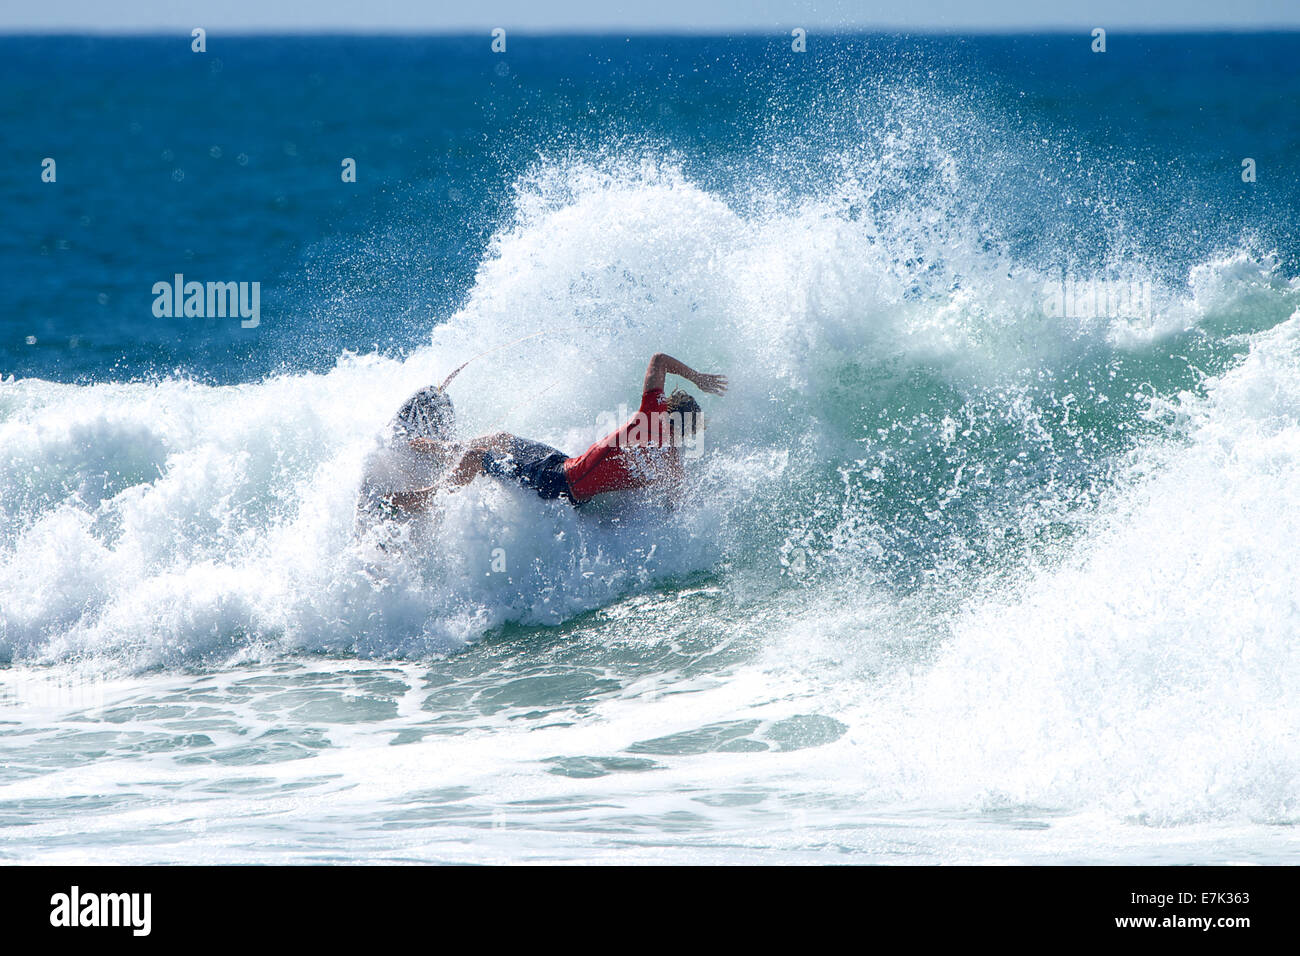 Lower Trestles, California, USA. 18th September, 2014. Riding away from seemingly, impossibly stretched out maneuvers - Stock Image